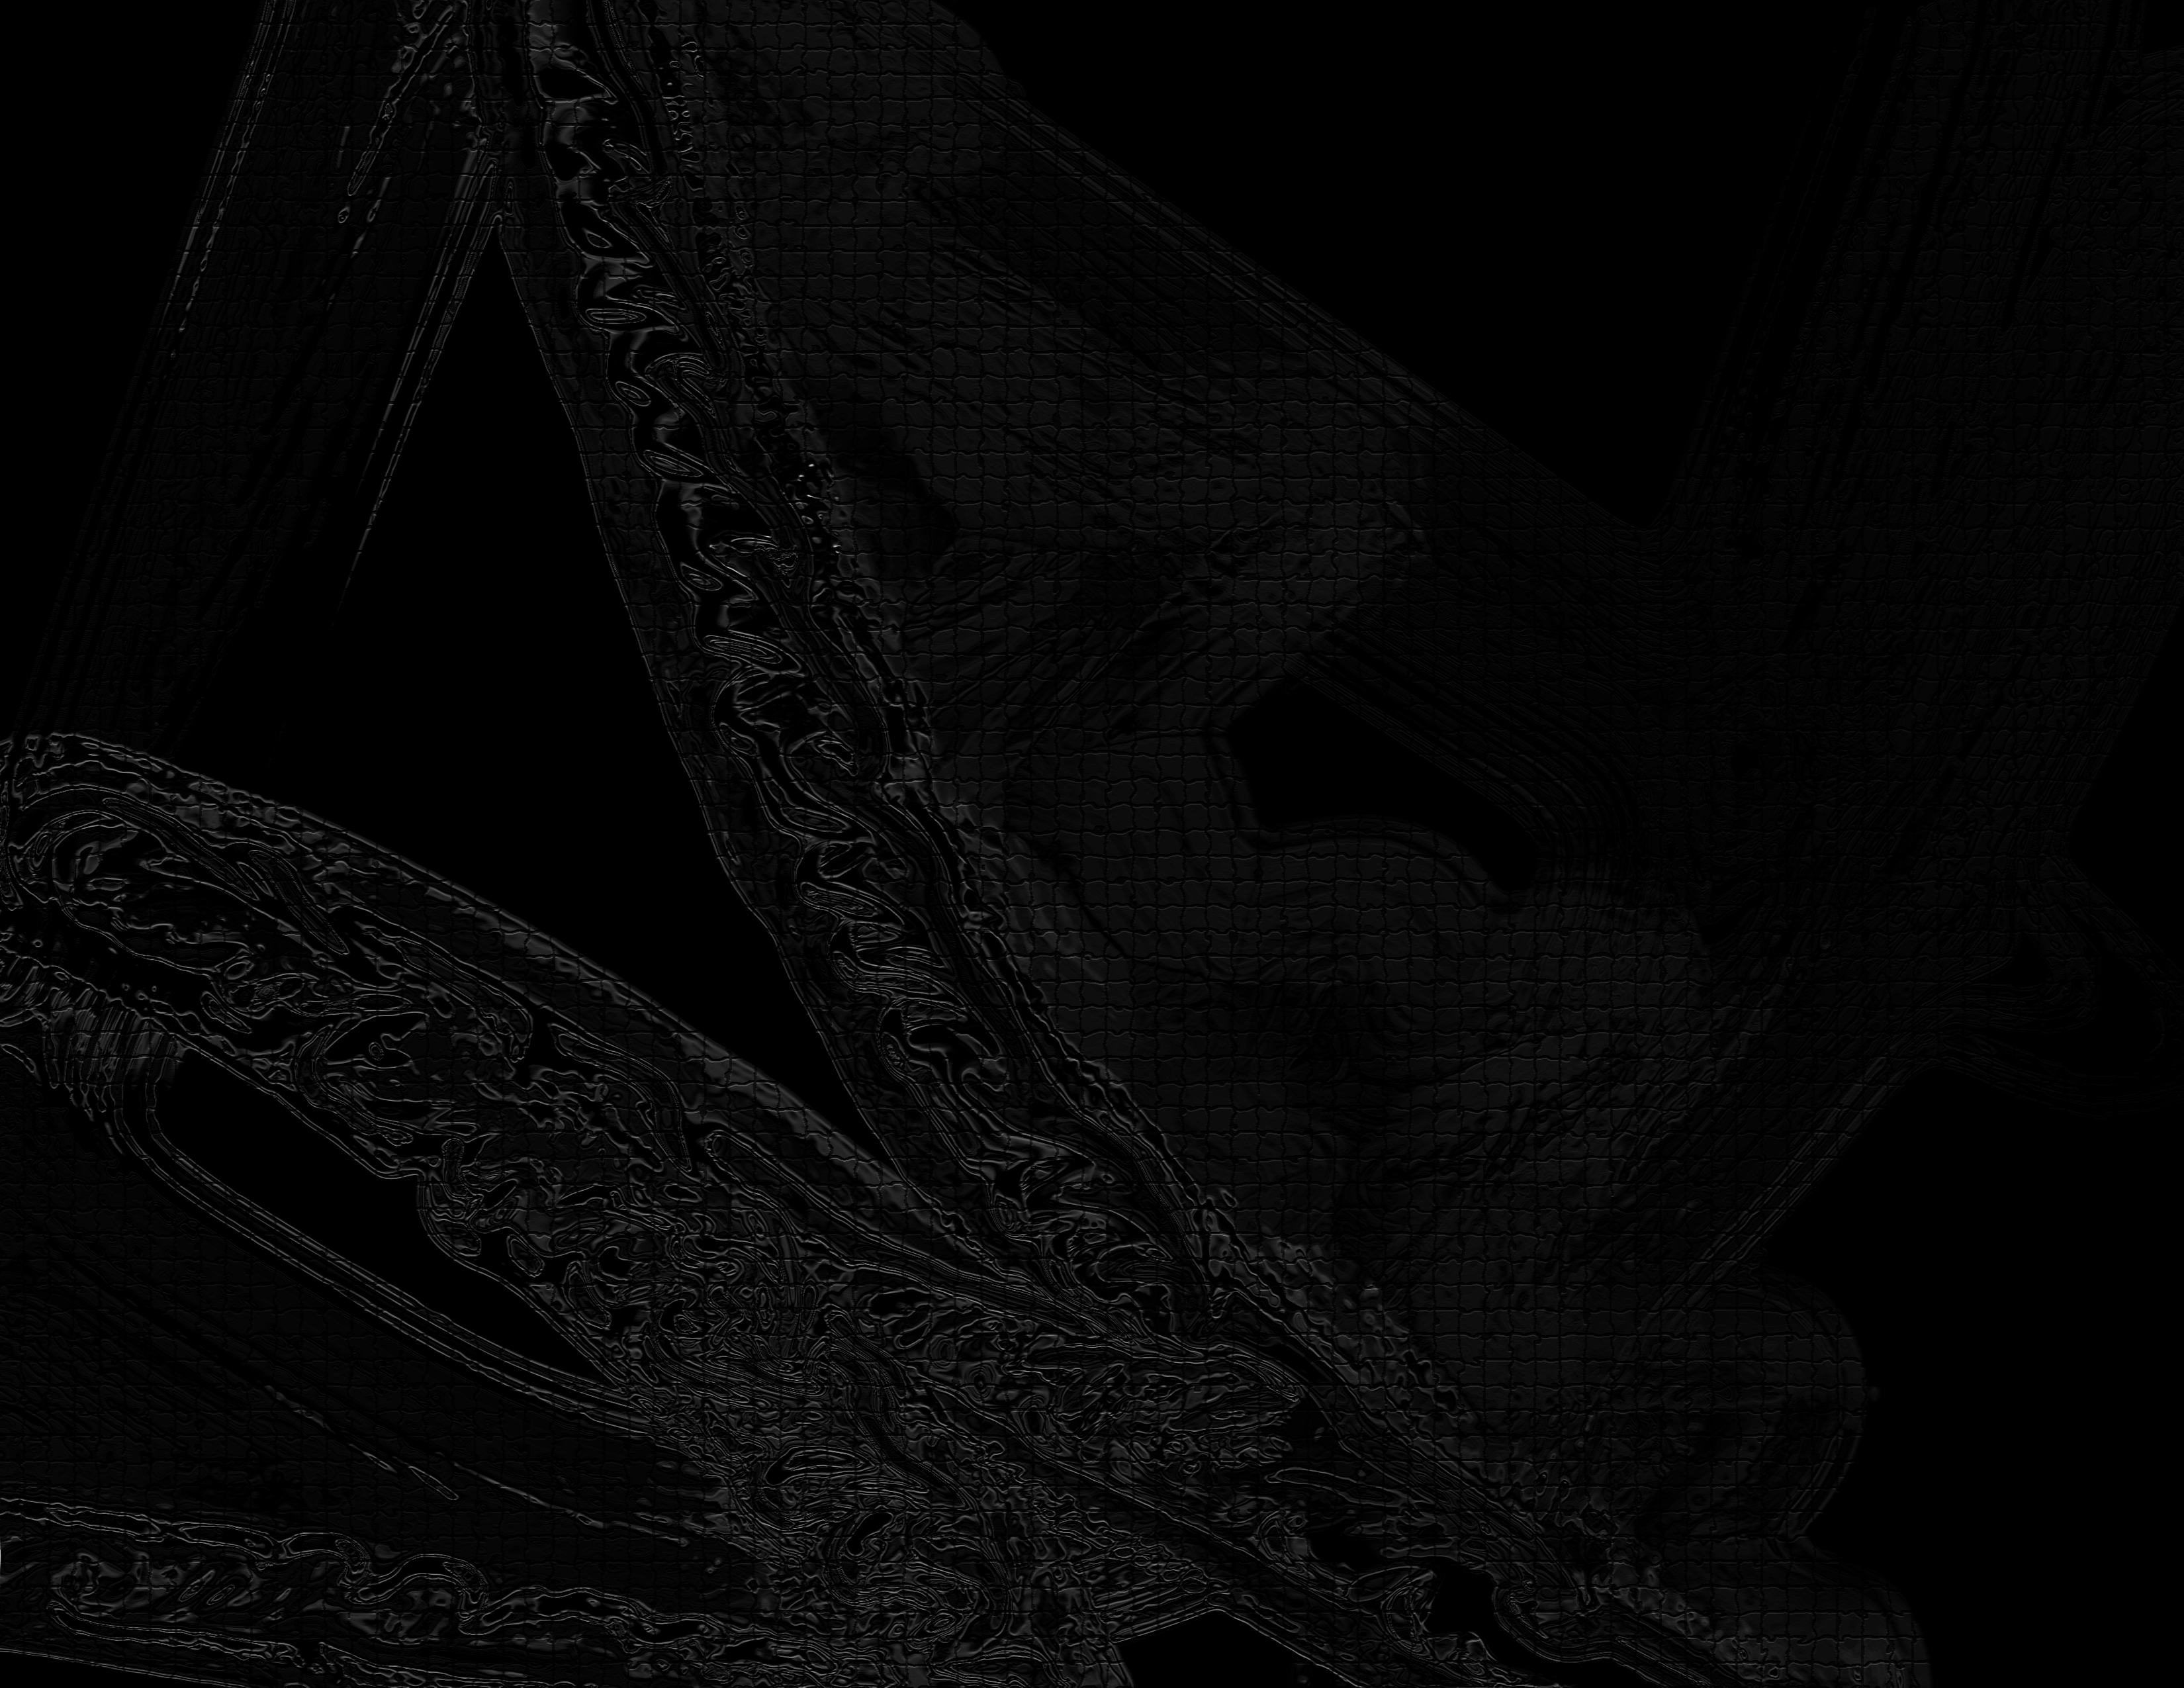 Abstract - Black Wallpaper